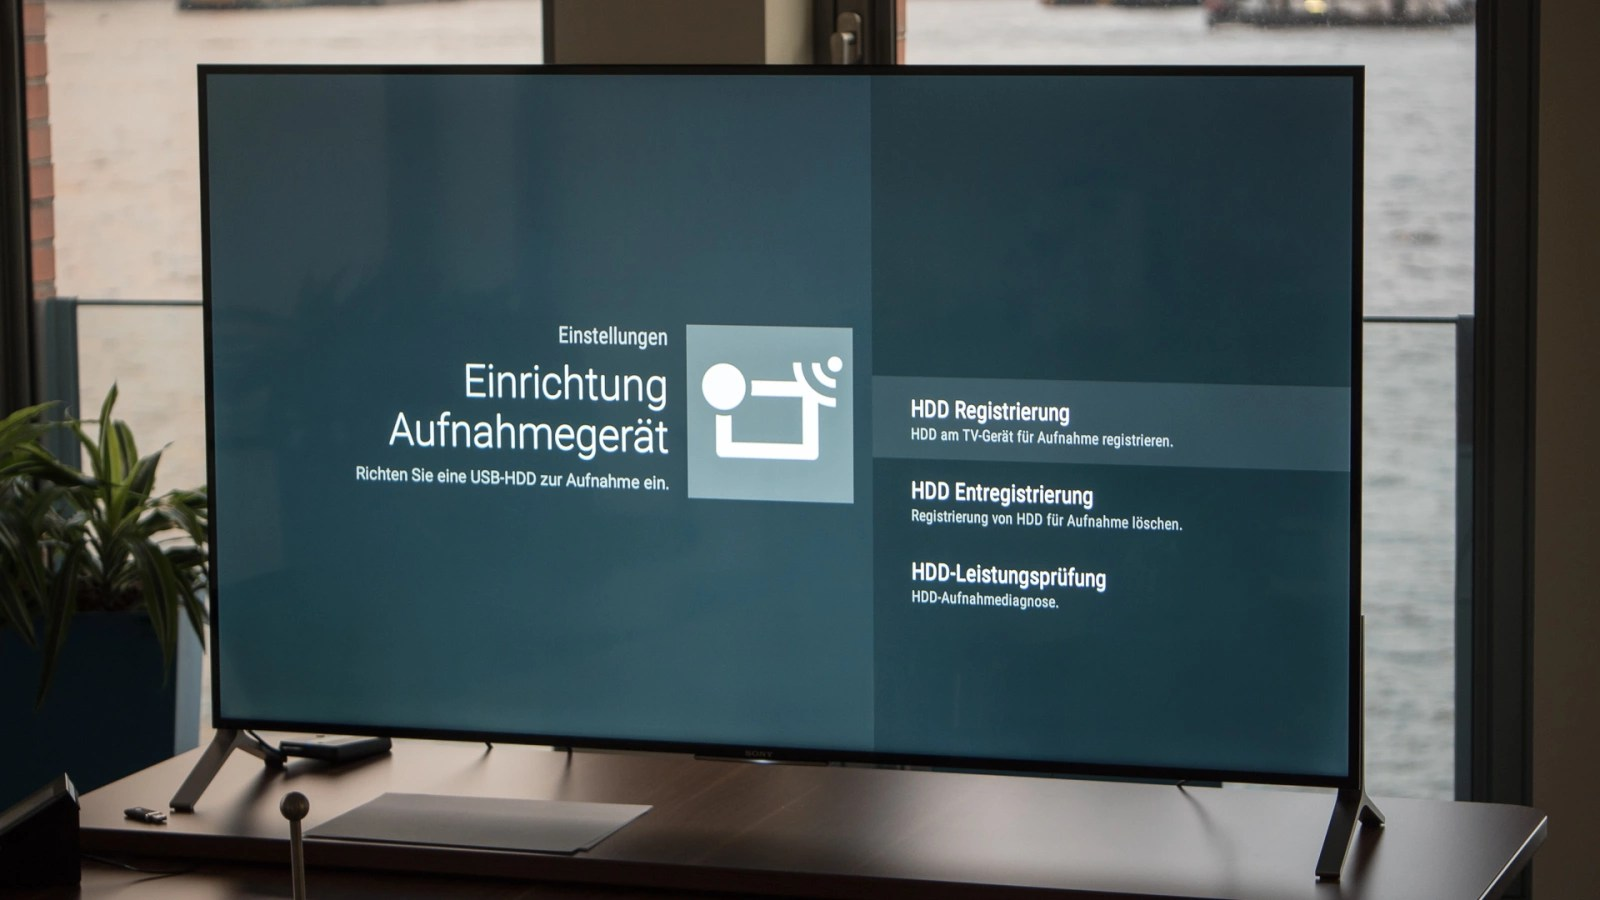 Ebook Reader Test Sony Bravia: So Funktioniert Usb-hdd-recording Mit Android